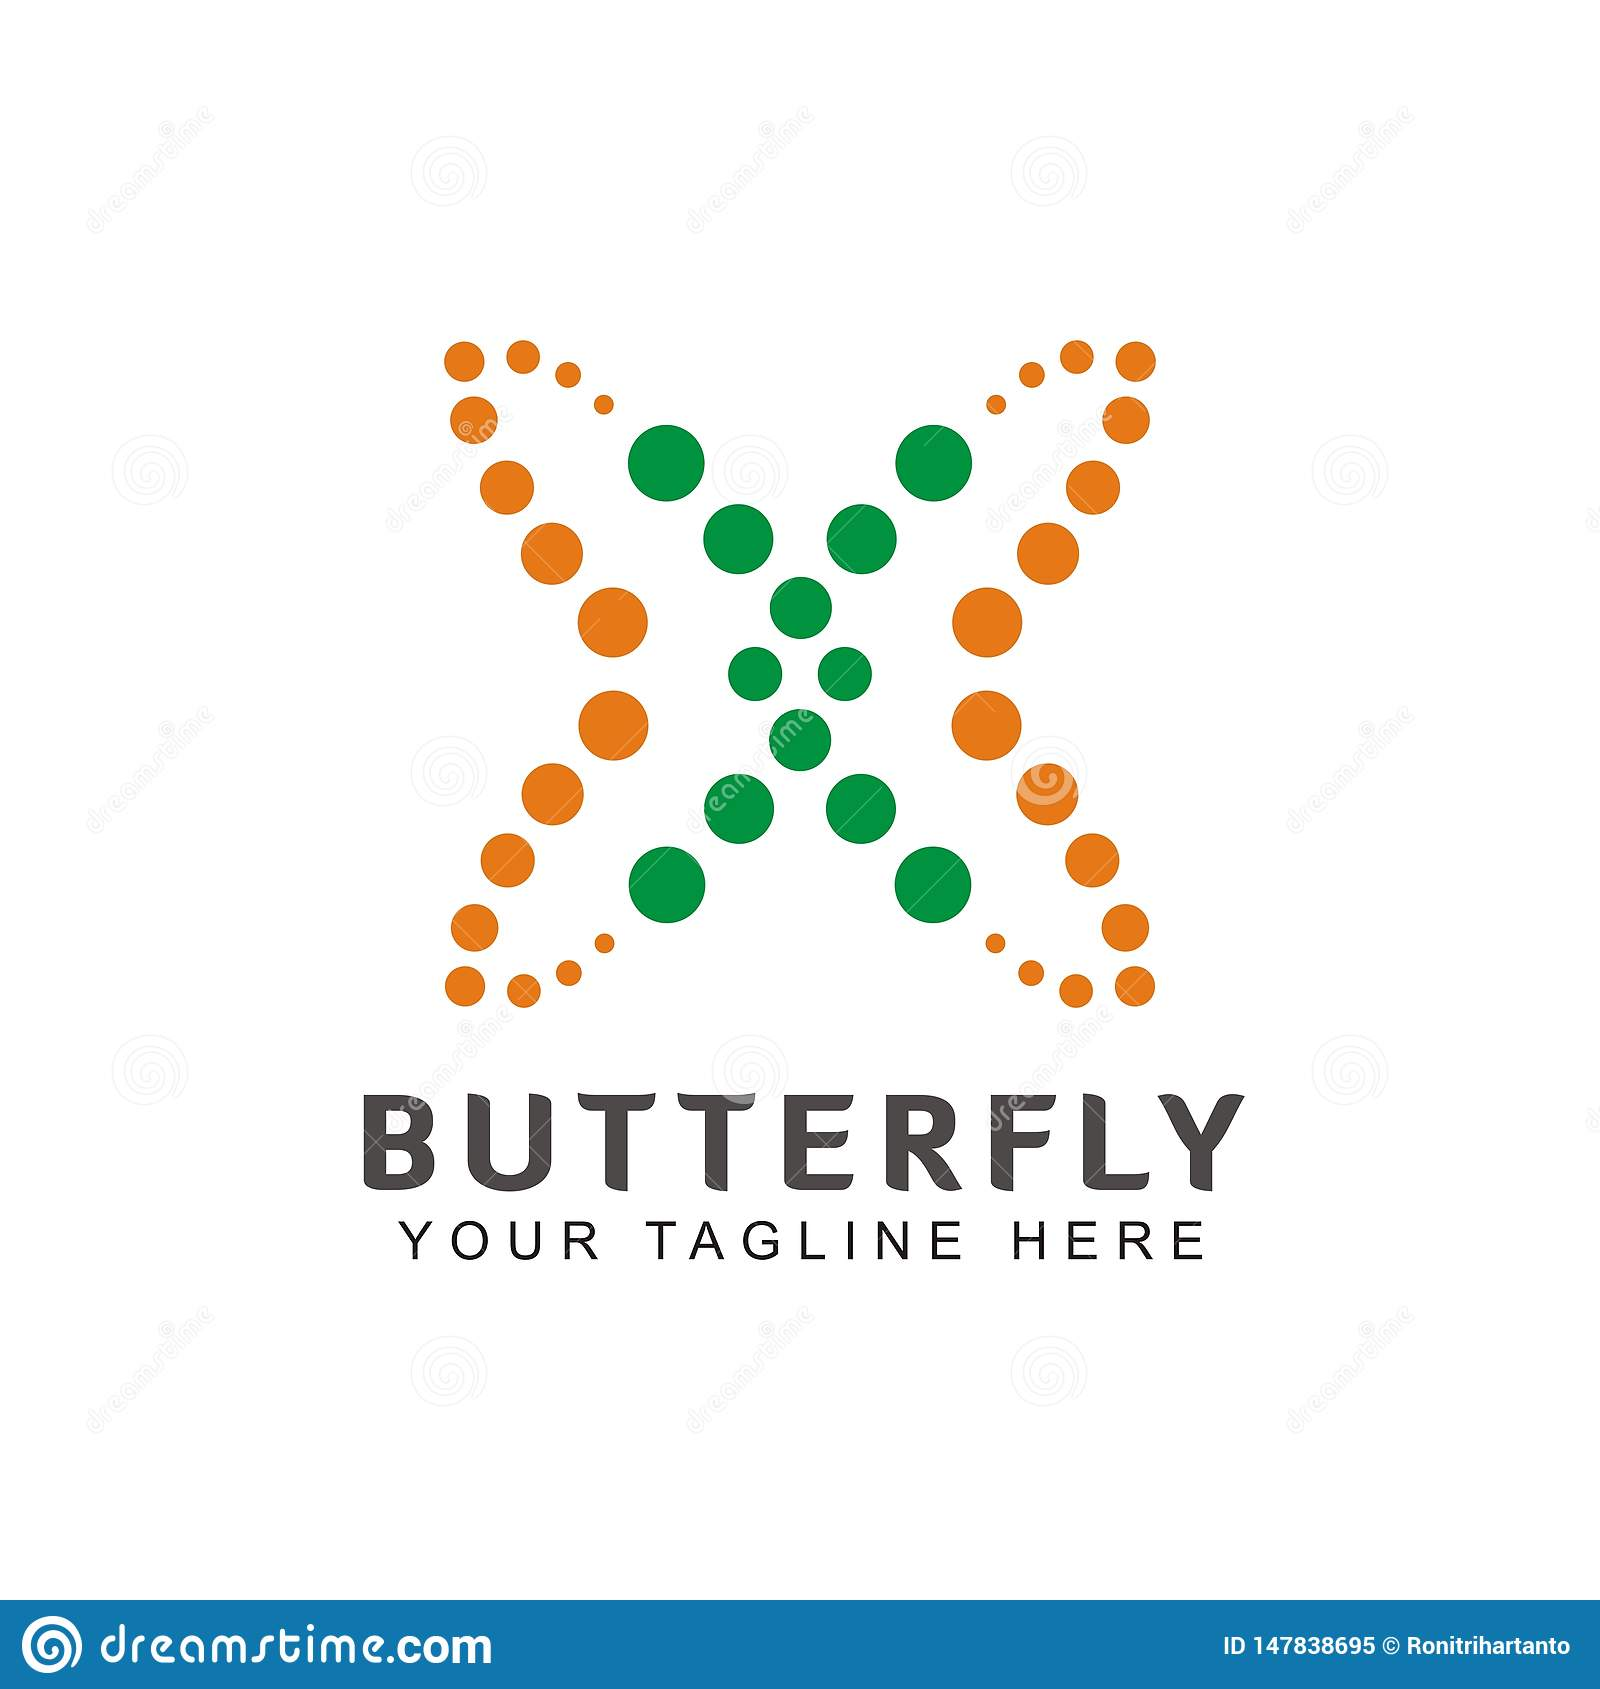 Simple and unique butterfly shaped logo Inspiration